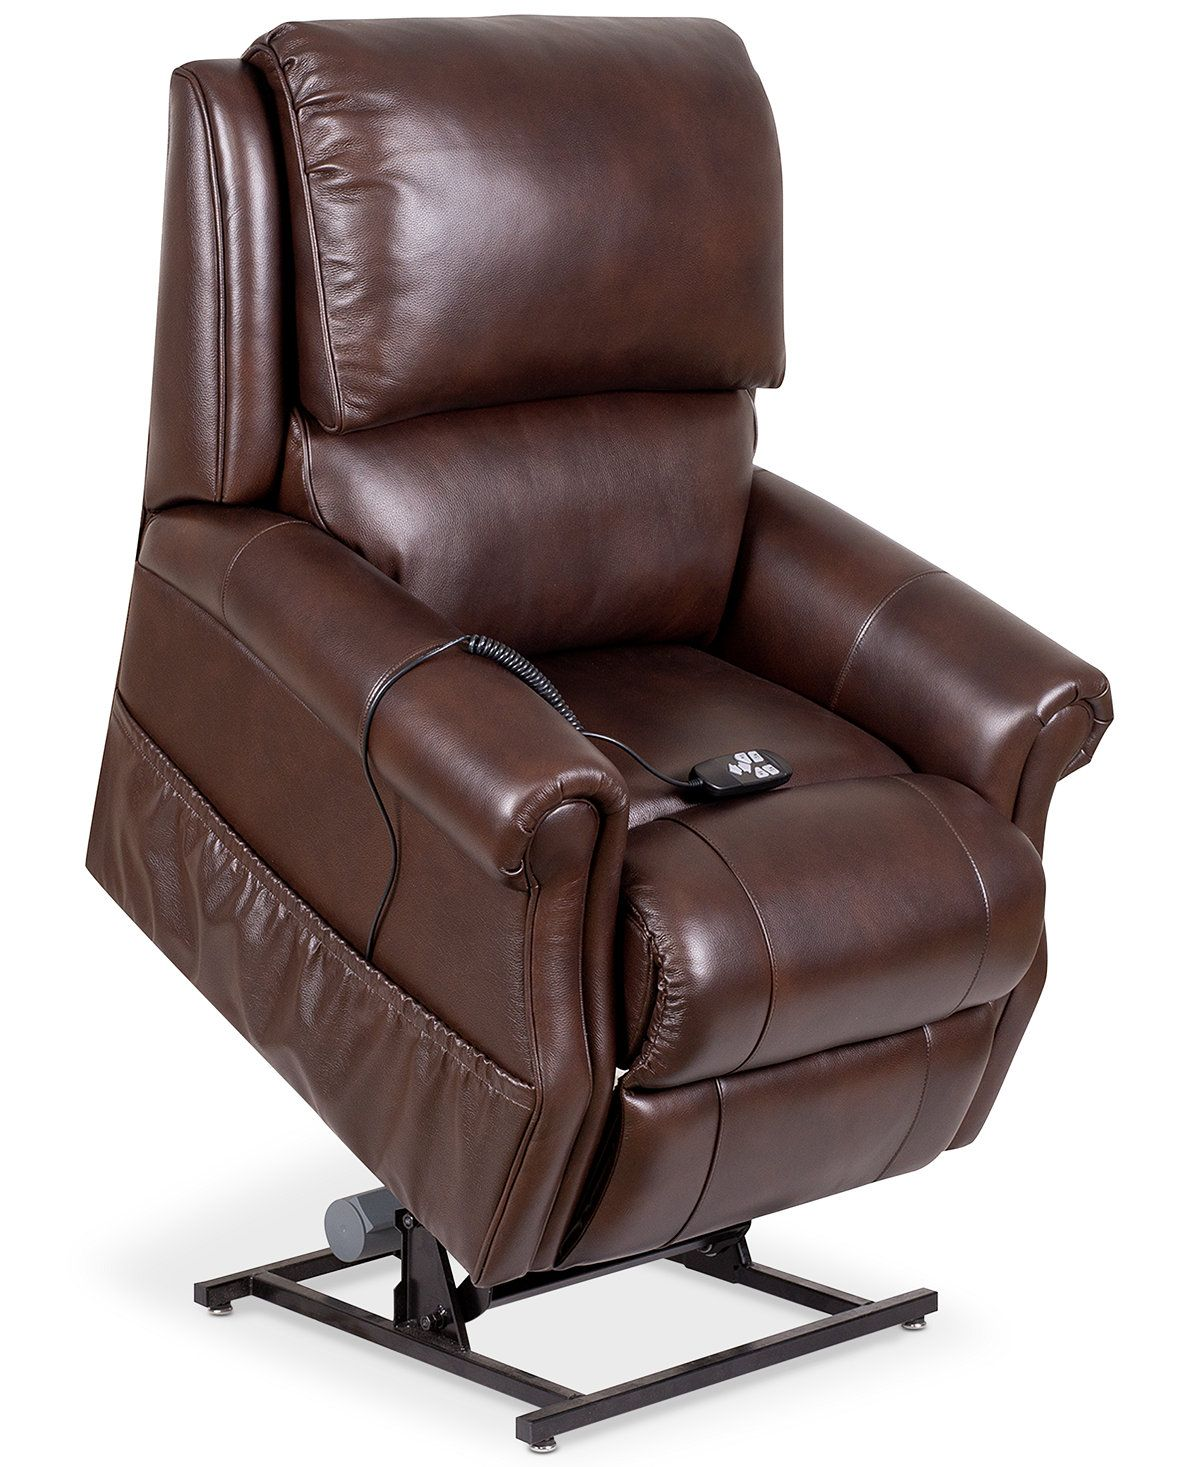 ashley chairs with power adult recliner barling recliners headrest